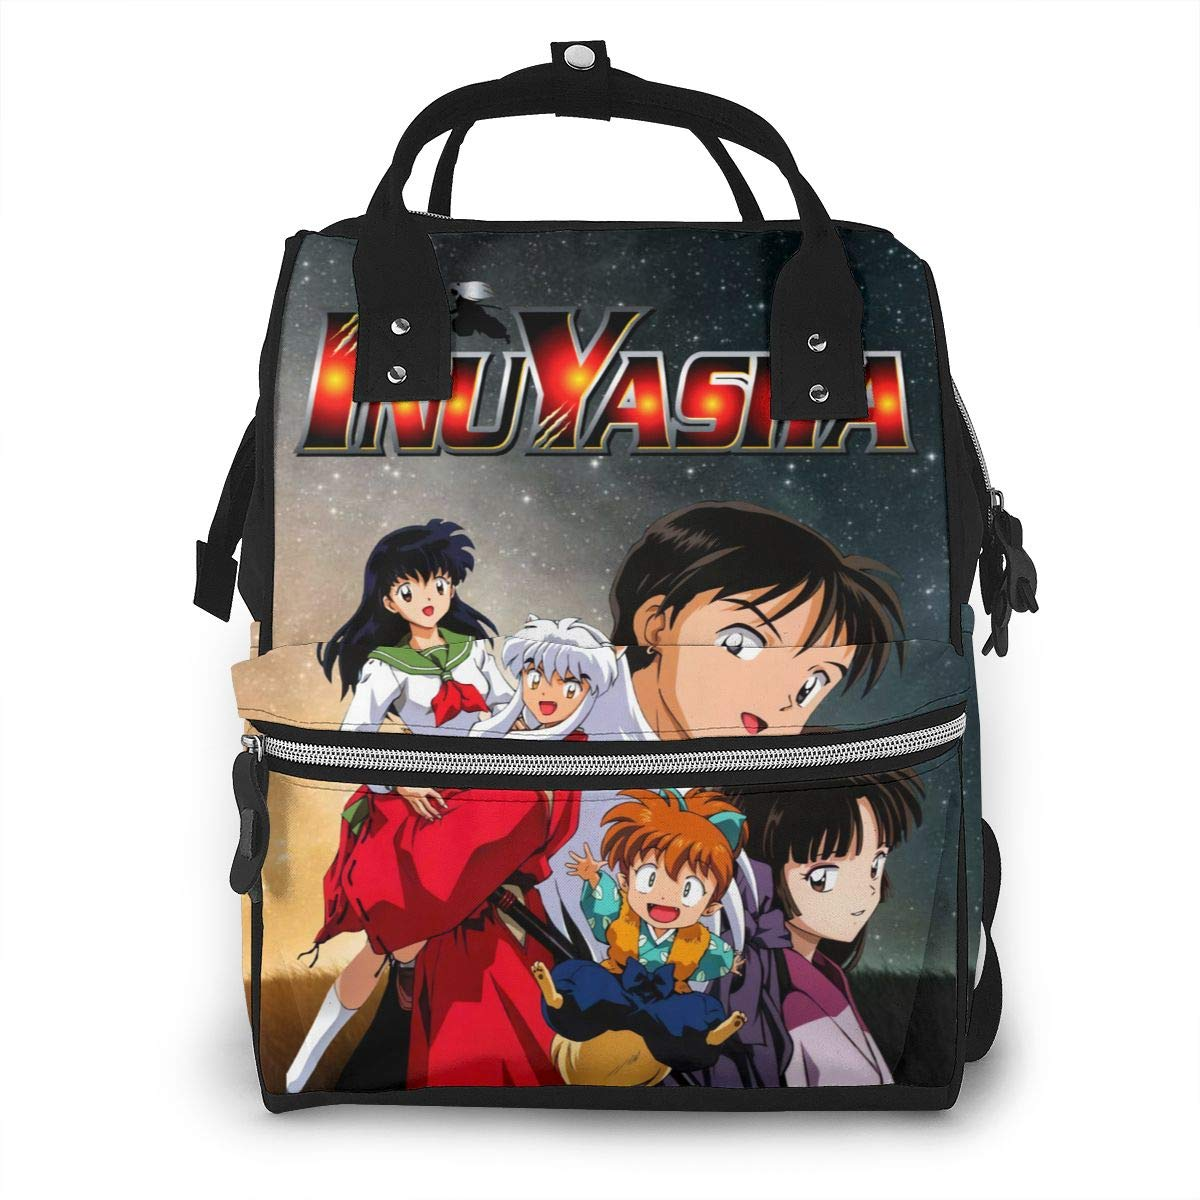 Inuyasha Large Capacity Multi-Function Diaper Bag Mummy Backpack Nappy Bags for Baby Care